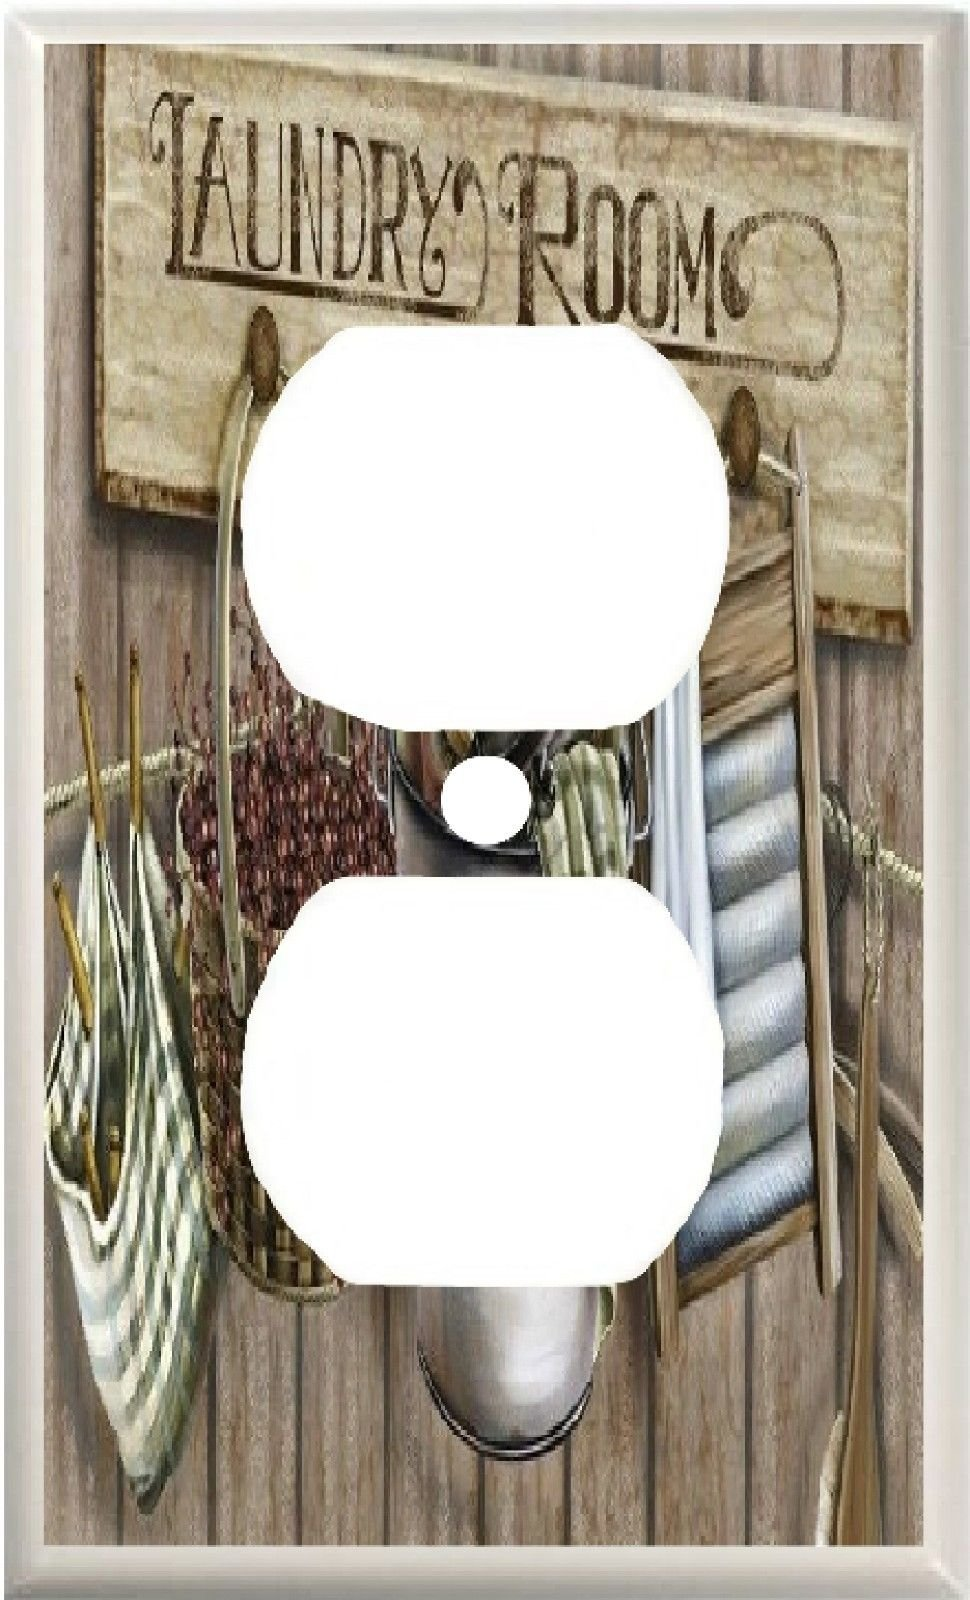 LAUNDRY ROOM WASH BOARD CLOTHES PINS BASKET HOME DECOR LIGHT SWITCH COVER PLATE OR OUTLET (1X OUTLET)